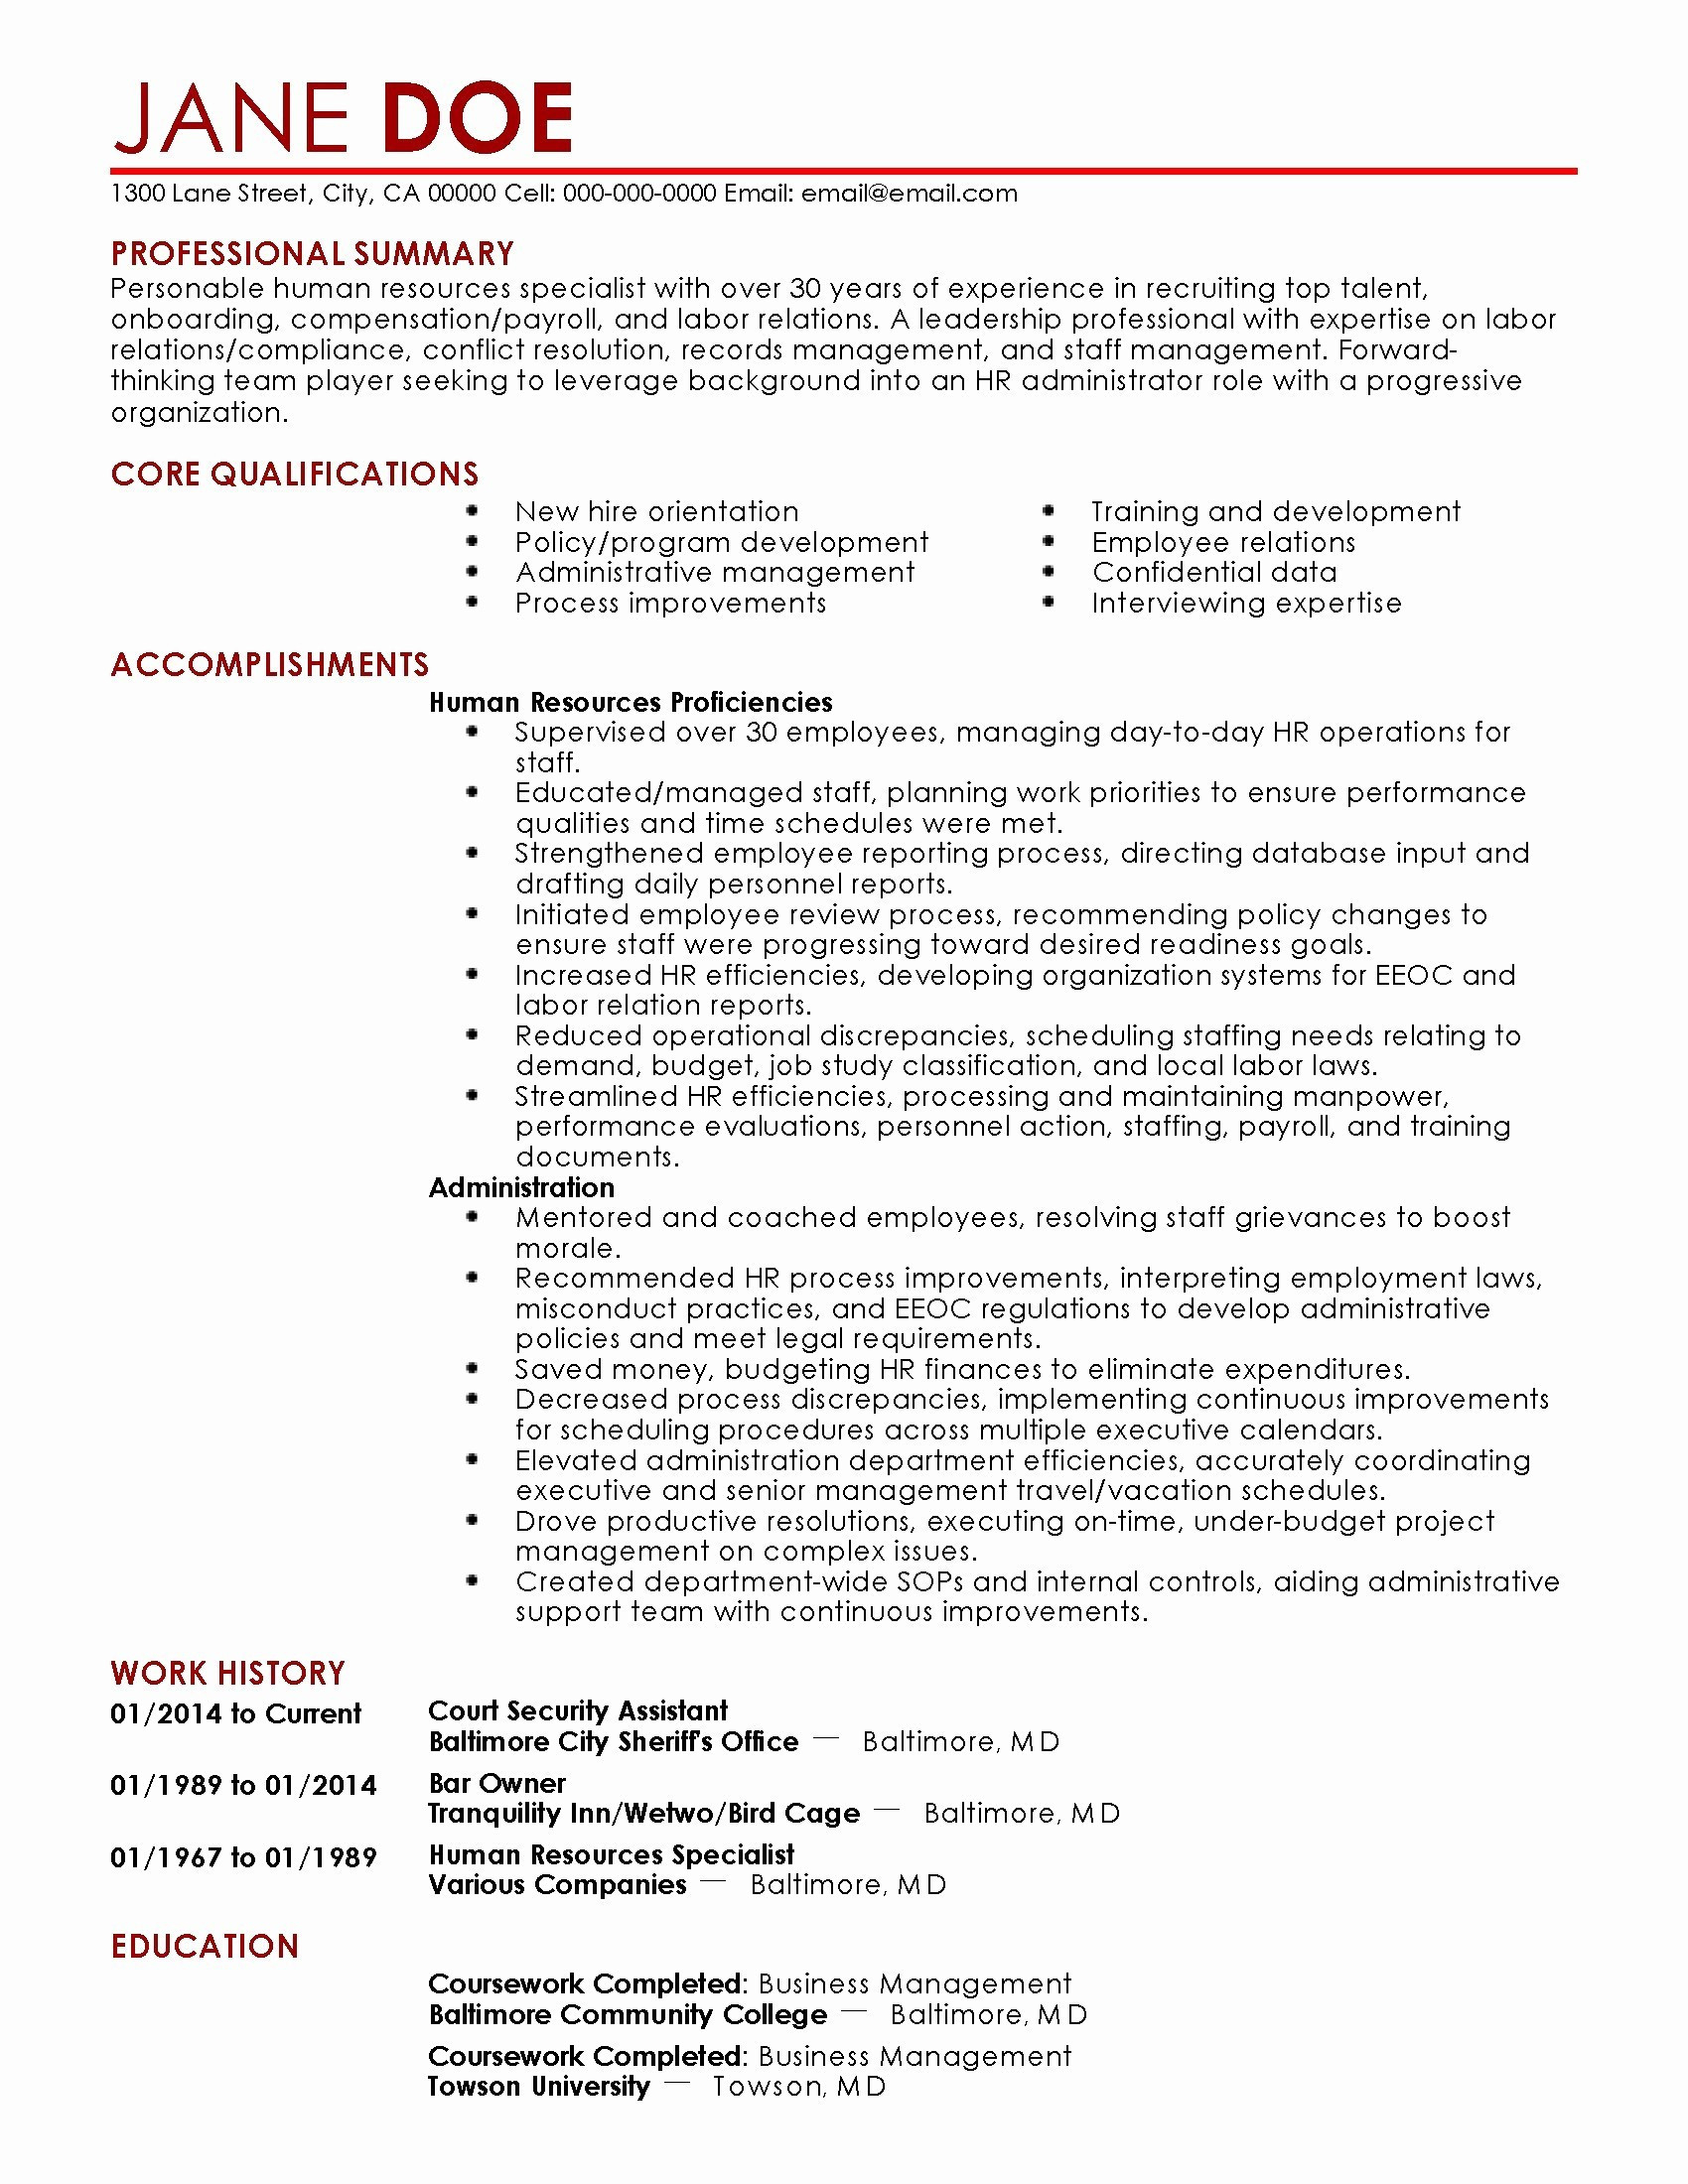 Certified Medical assistant Resume Template - Physician assistant Resume Templates New Medical assistant Resume